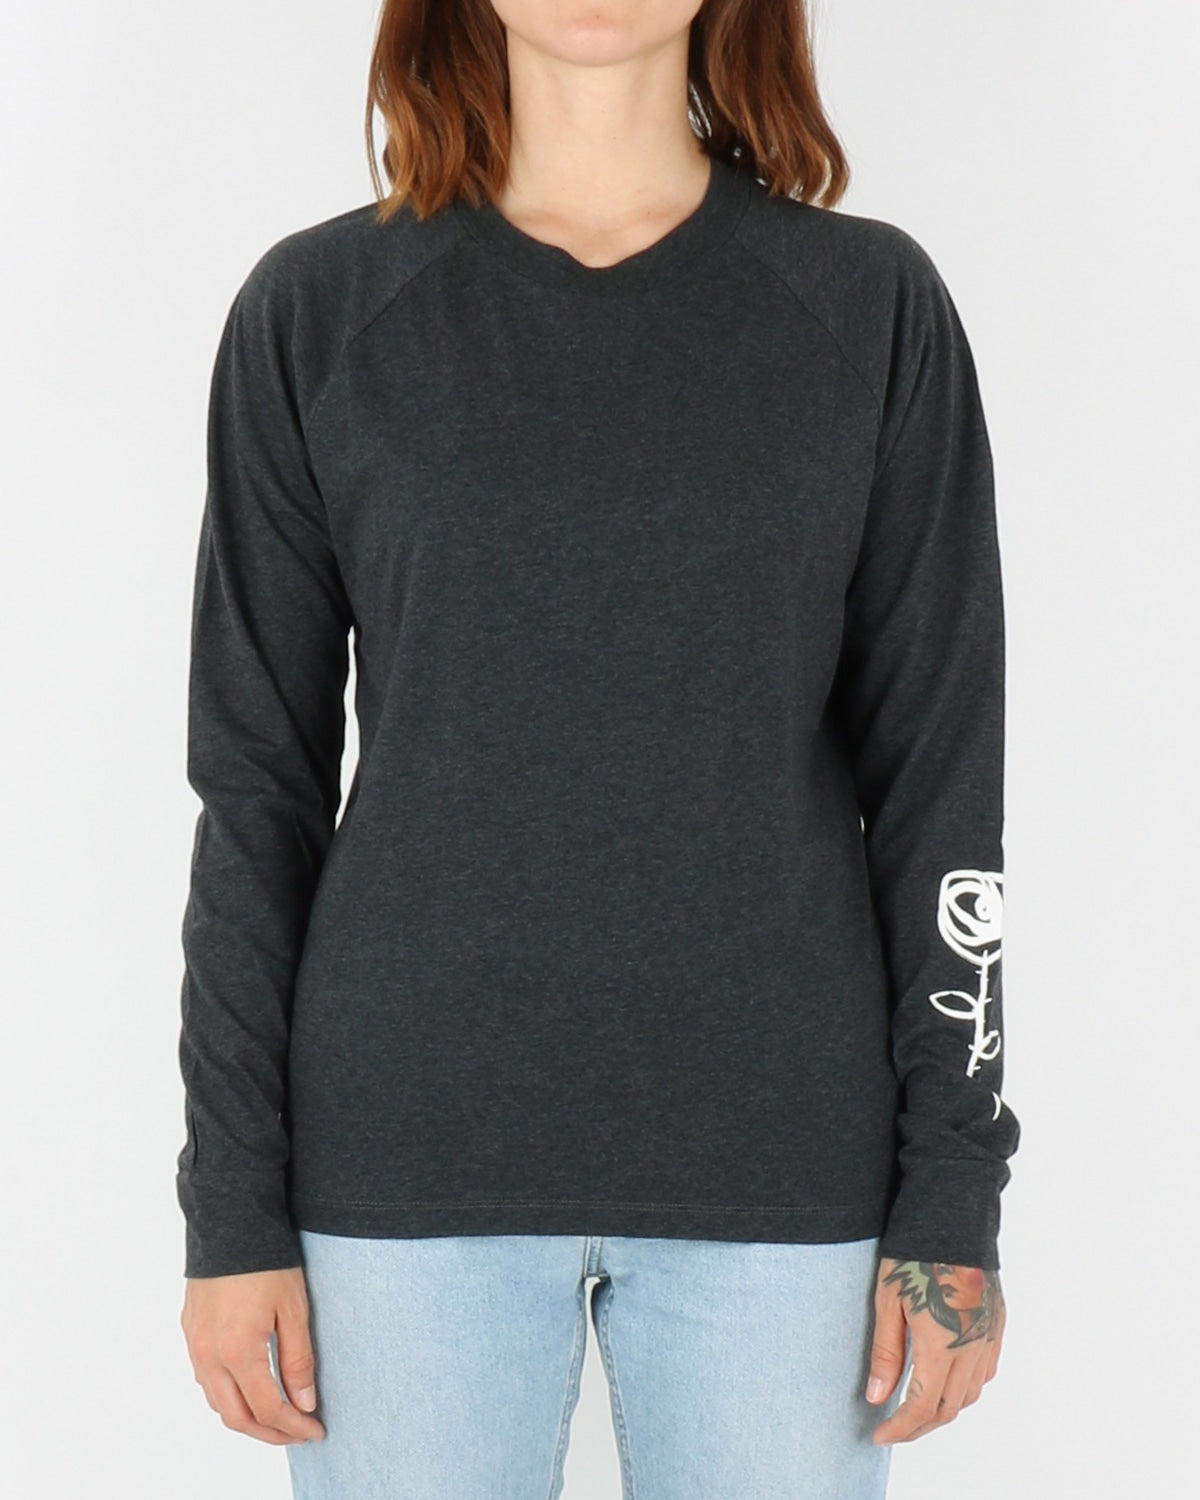 wood wood_halli longsleeve_dark grey_view_1_3